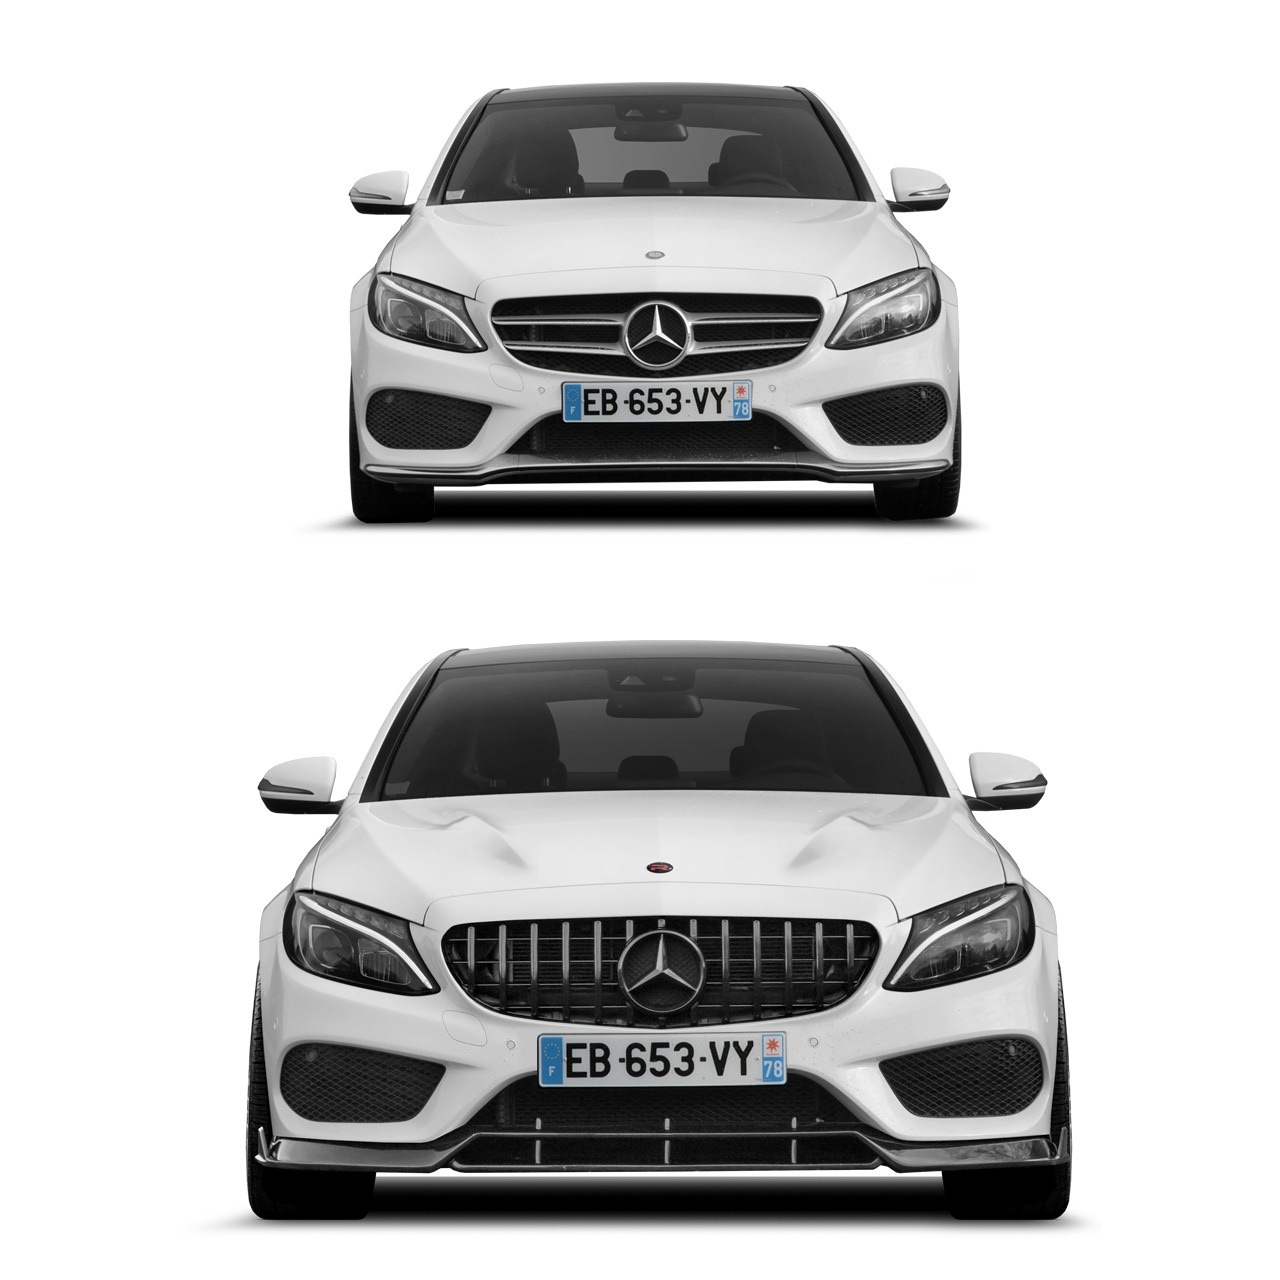 Renegade body kit for Mercedes Benz C-Class W205 new style